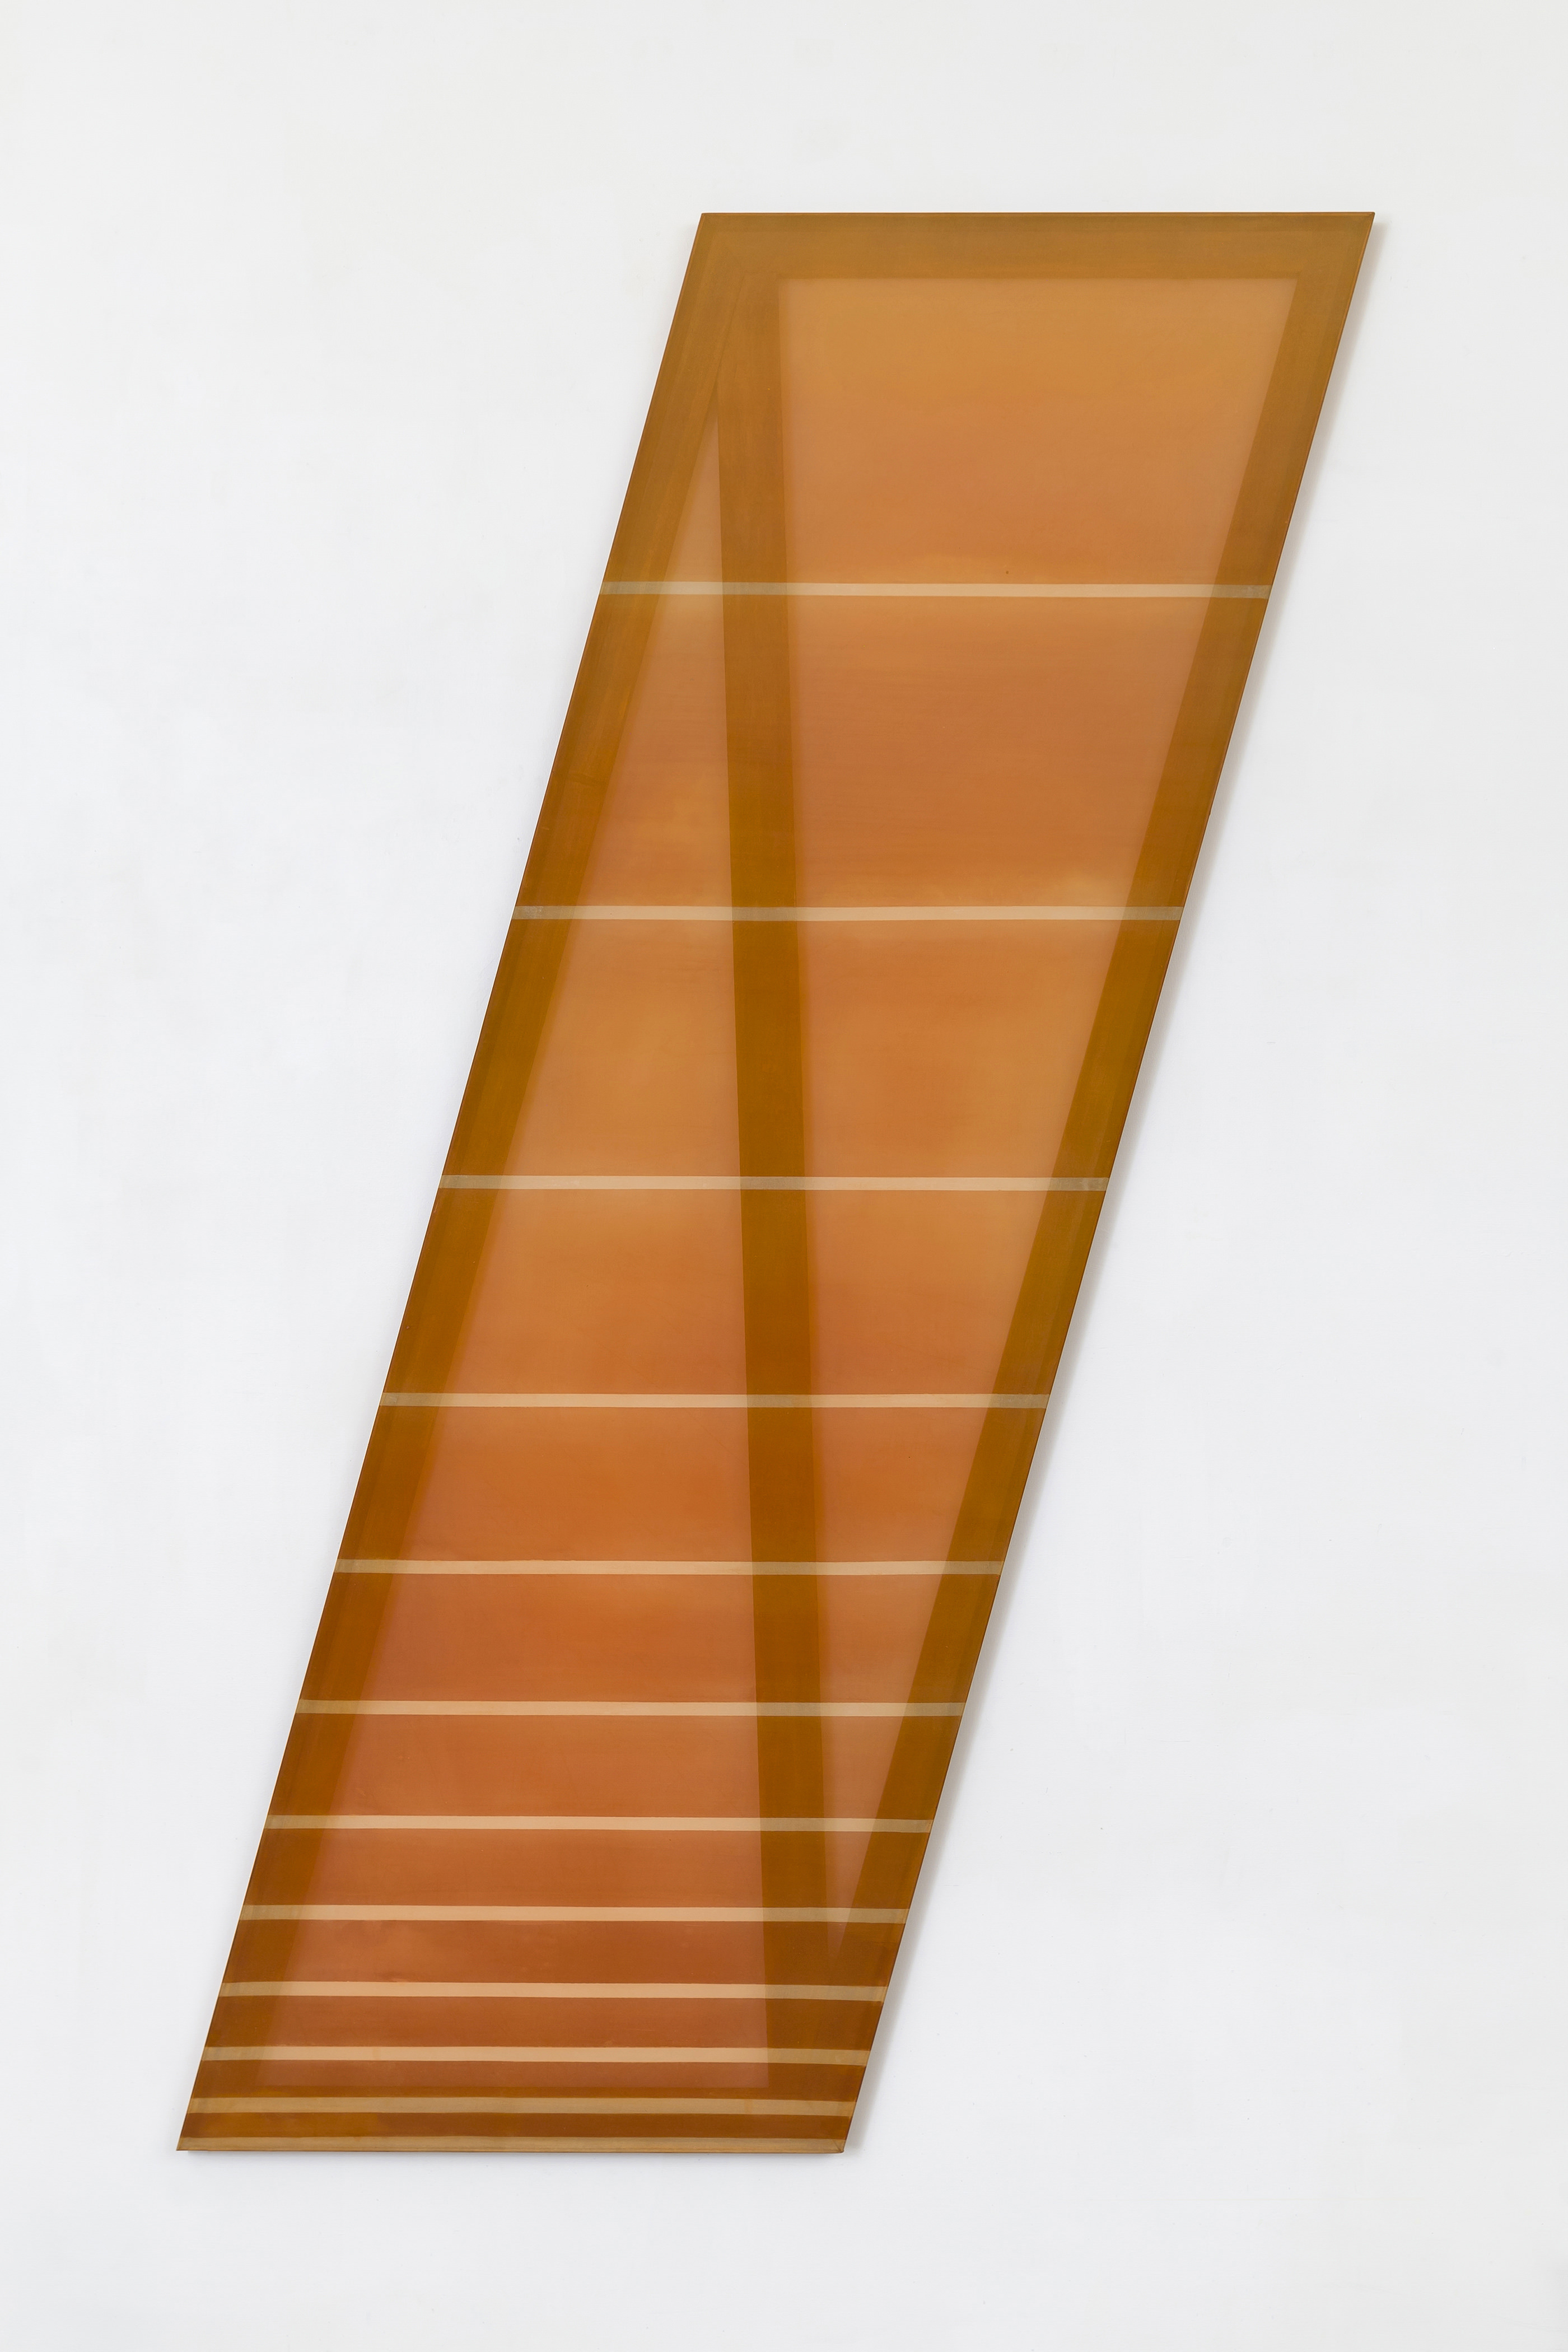 Rebecca Ward, / (rust and cream), 2015, dye on silk, 78 x 26 in